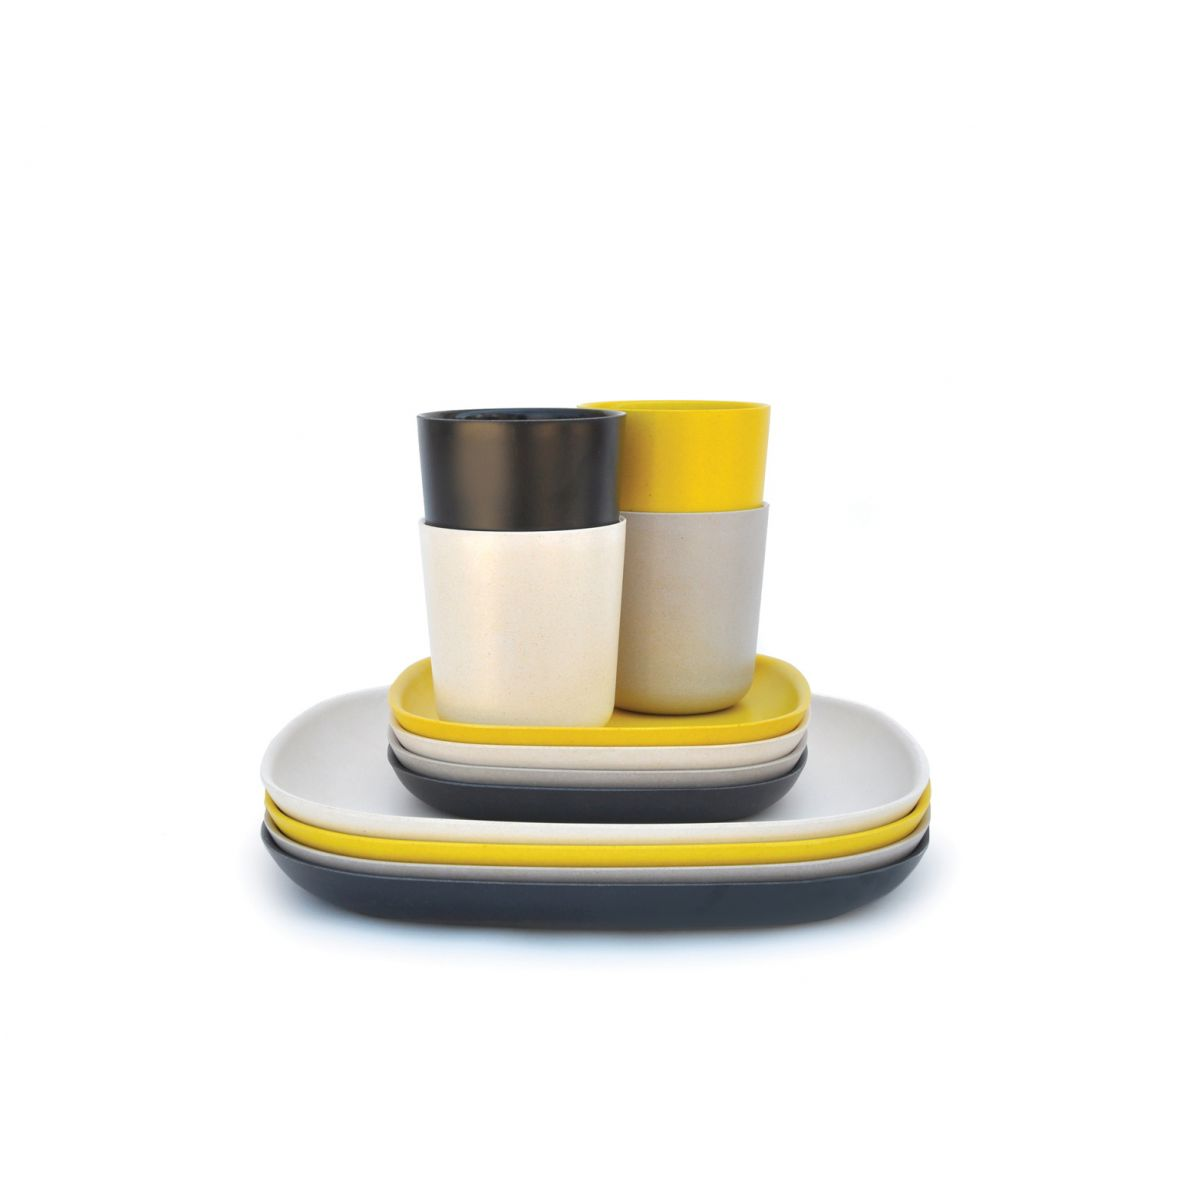 Assiette Jetable Solide Lunch Set En Fibre De Bambou Biodégradable 4 Gobelets 4